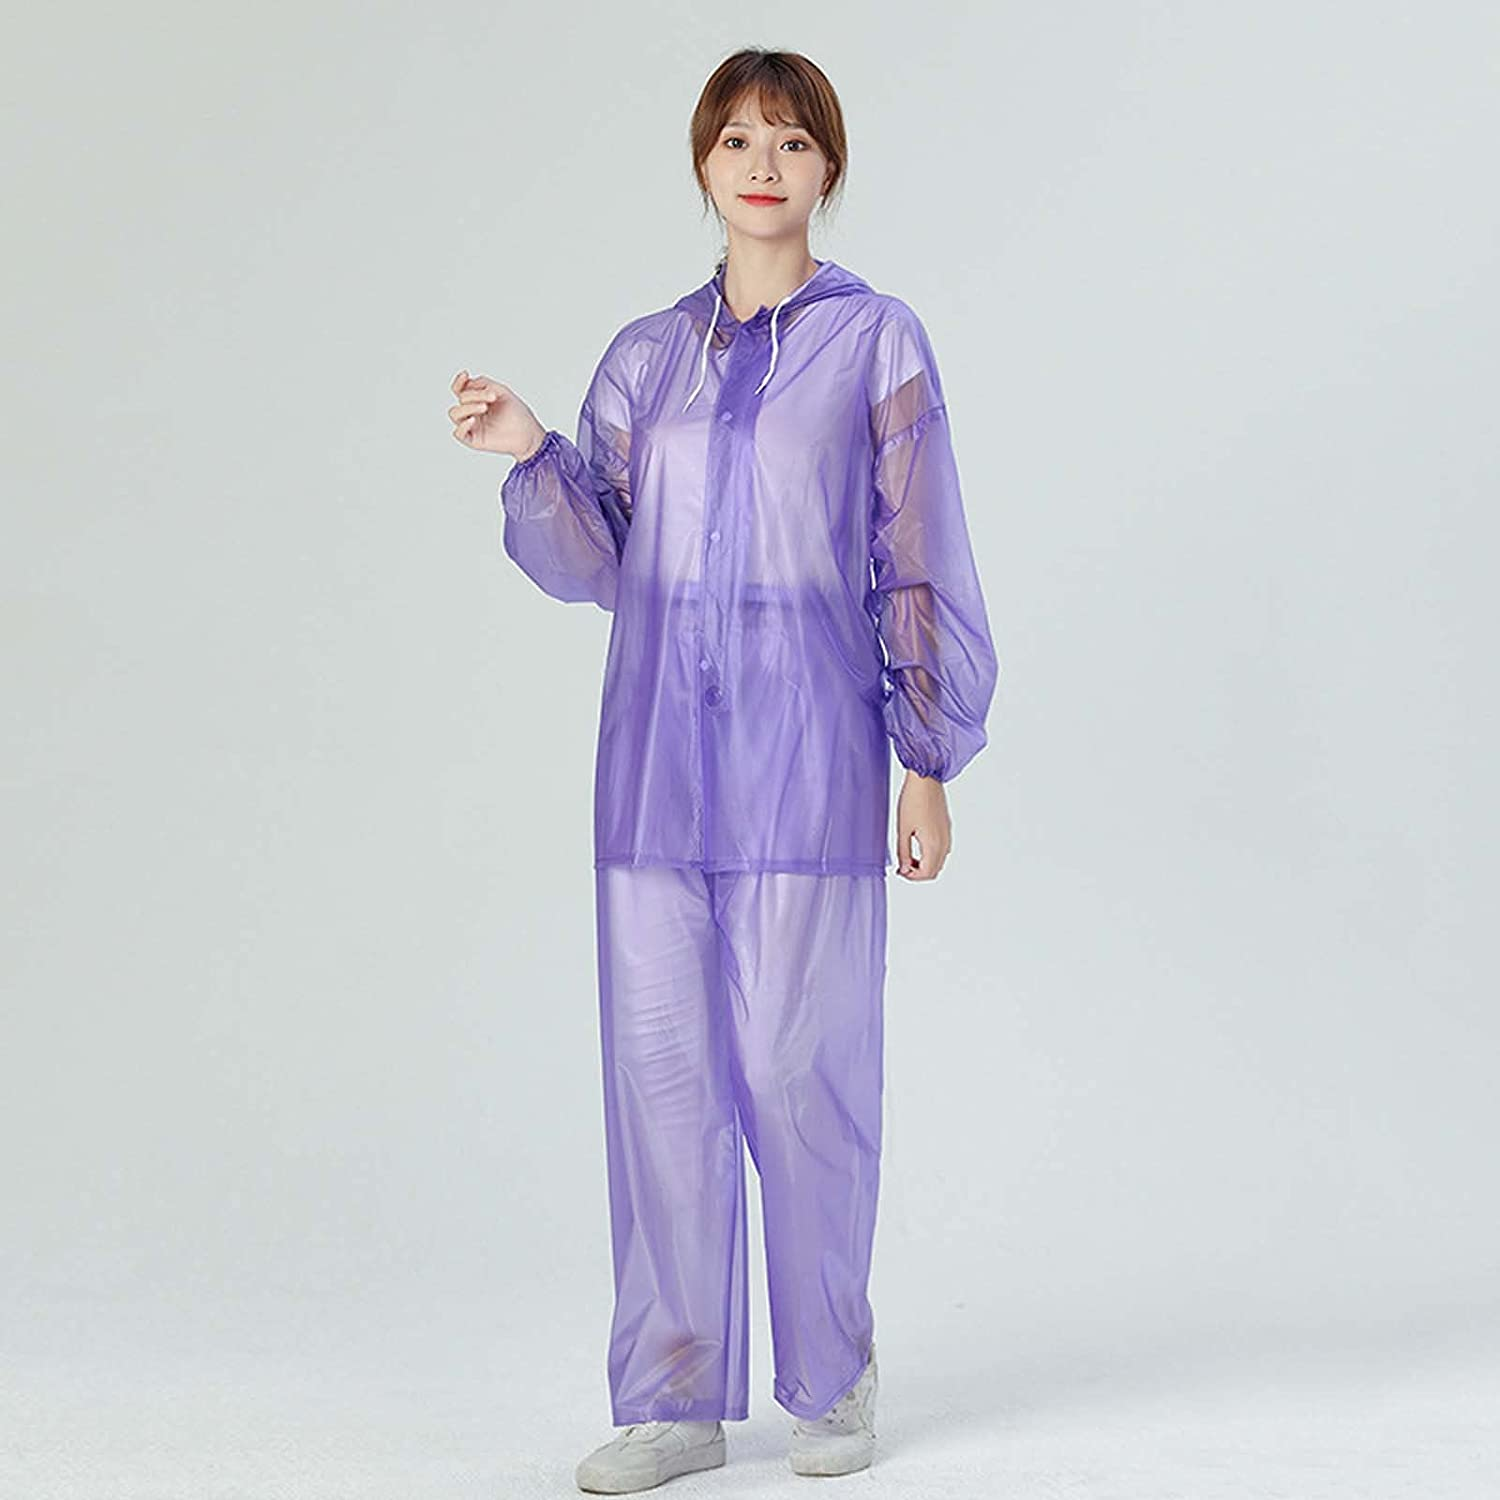 FHGH Transparent Split Raincoat, PVC Sea Glue Adult Hooded Rainsuit, for Outdoor Cycling, Camping, Hiking, Etc,A,Medium